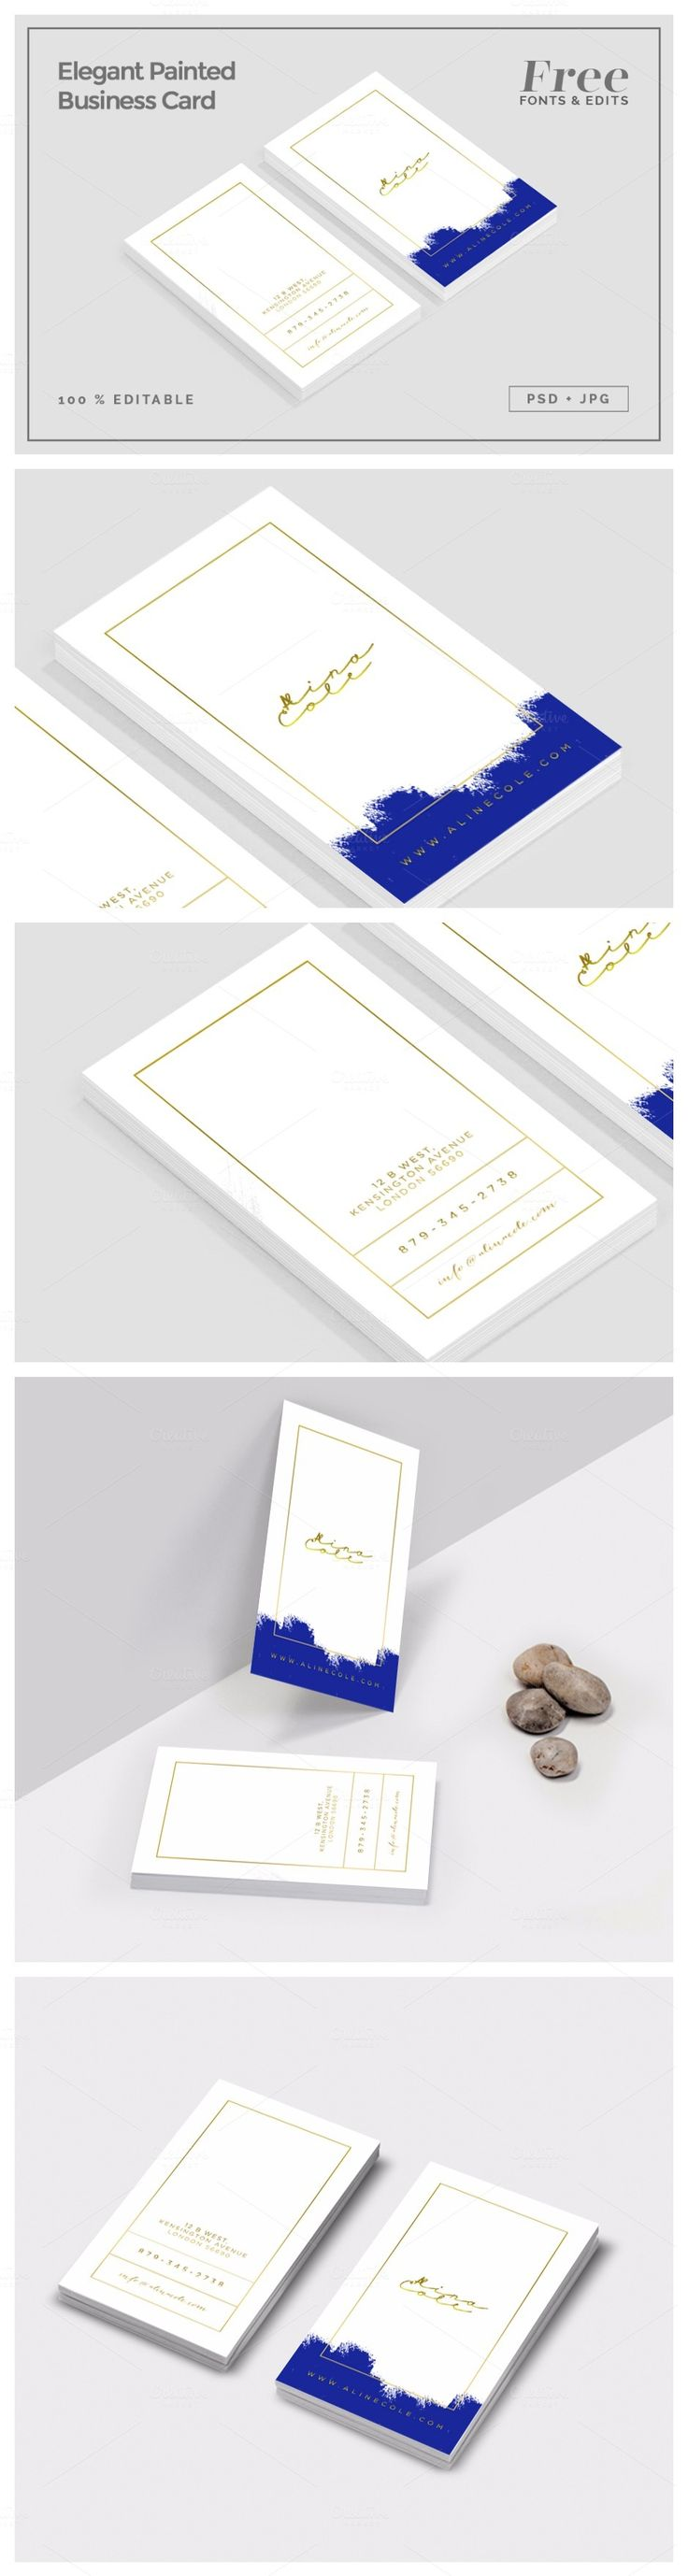 Elegant Painted Business Card https://creativemarket.com/MeeraG/127420-Elegant-Painted-Business-Card?u=MeeraG | #business #card #elegant #painted #businesscard #personalcard #branding #stationary